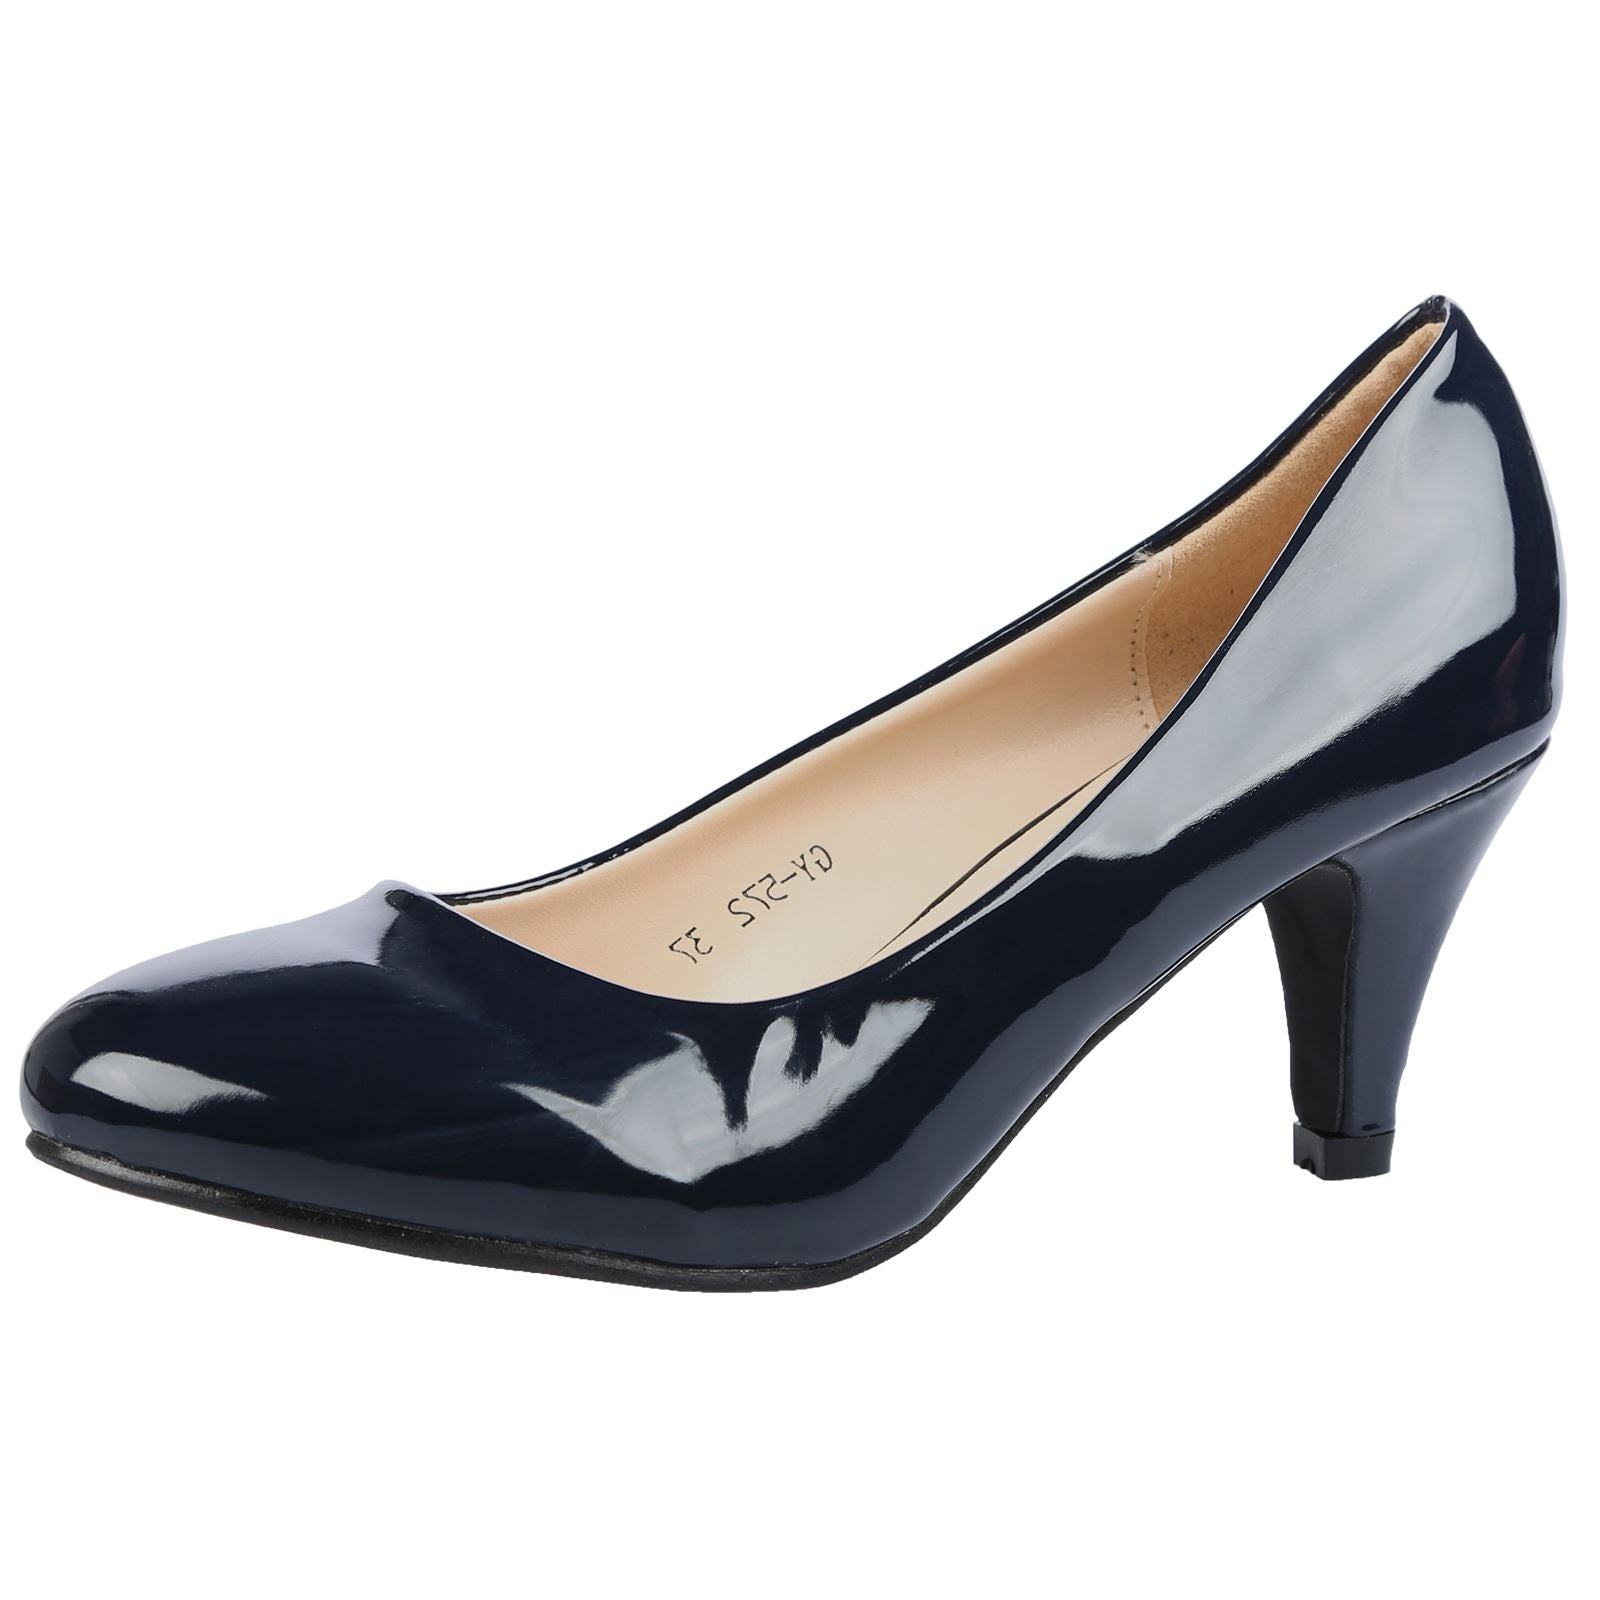 Leona Mid Heel Court Shoes in Navy Blue Patent